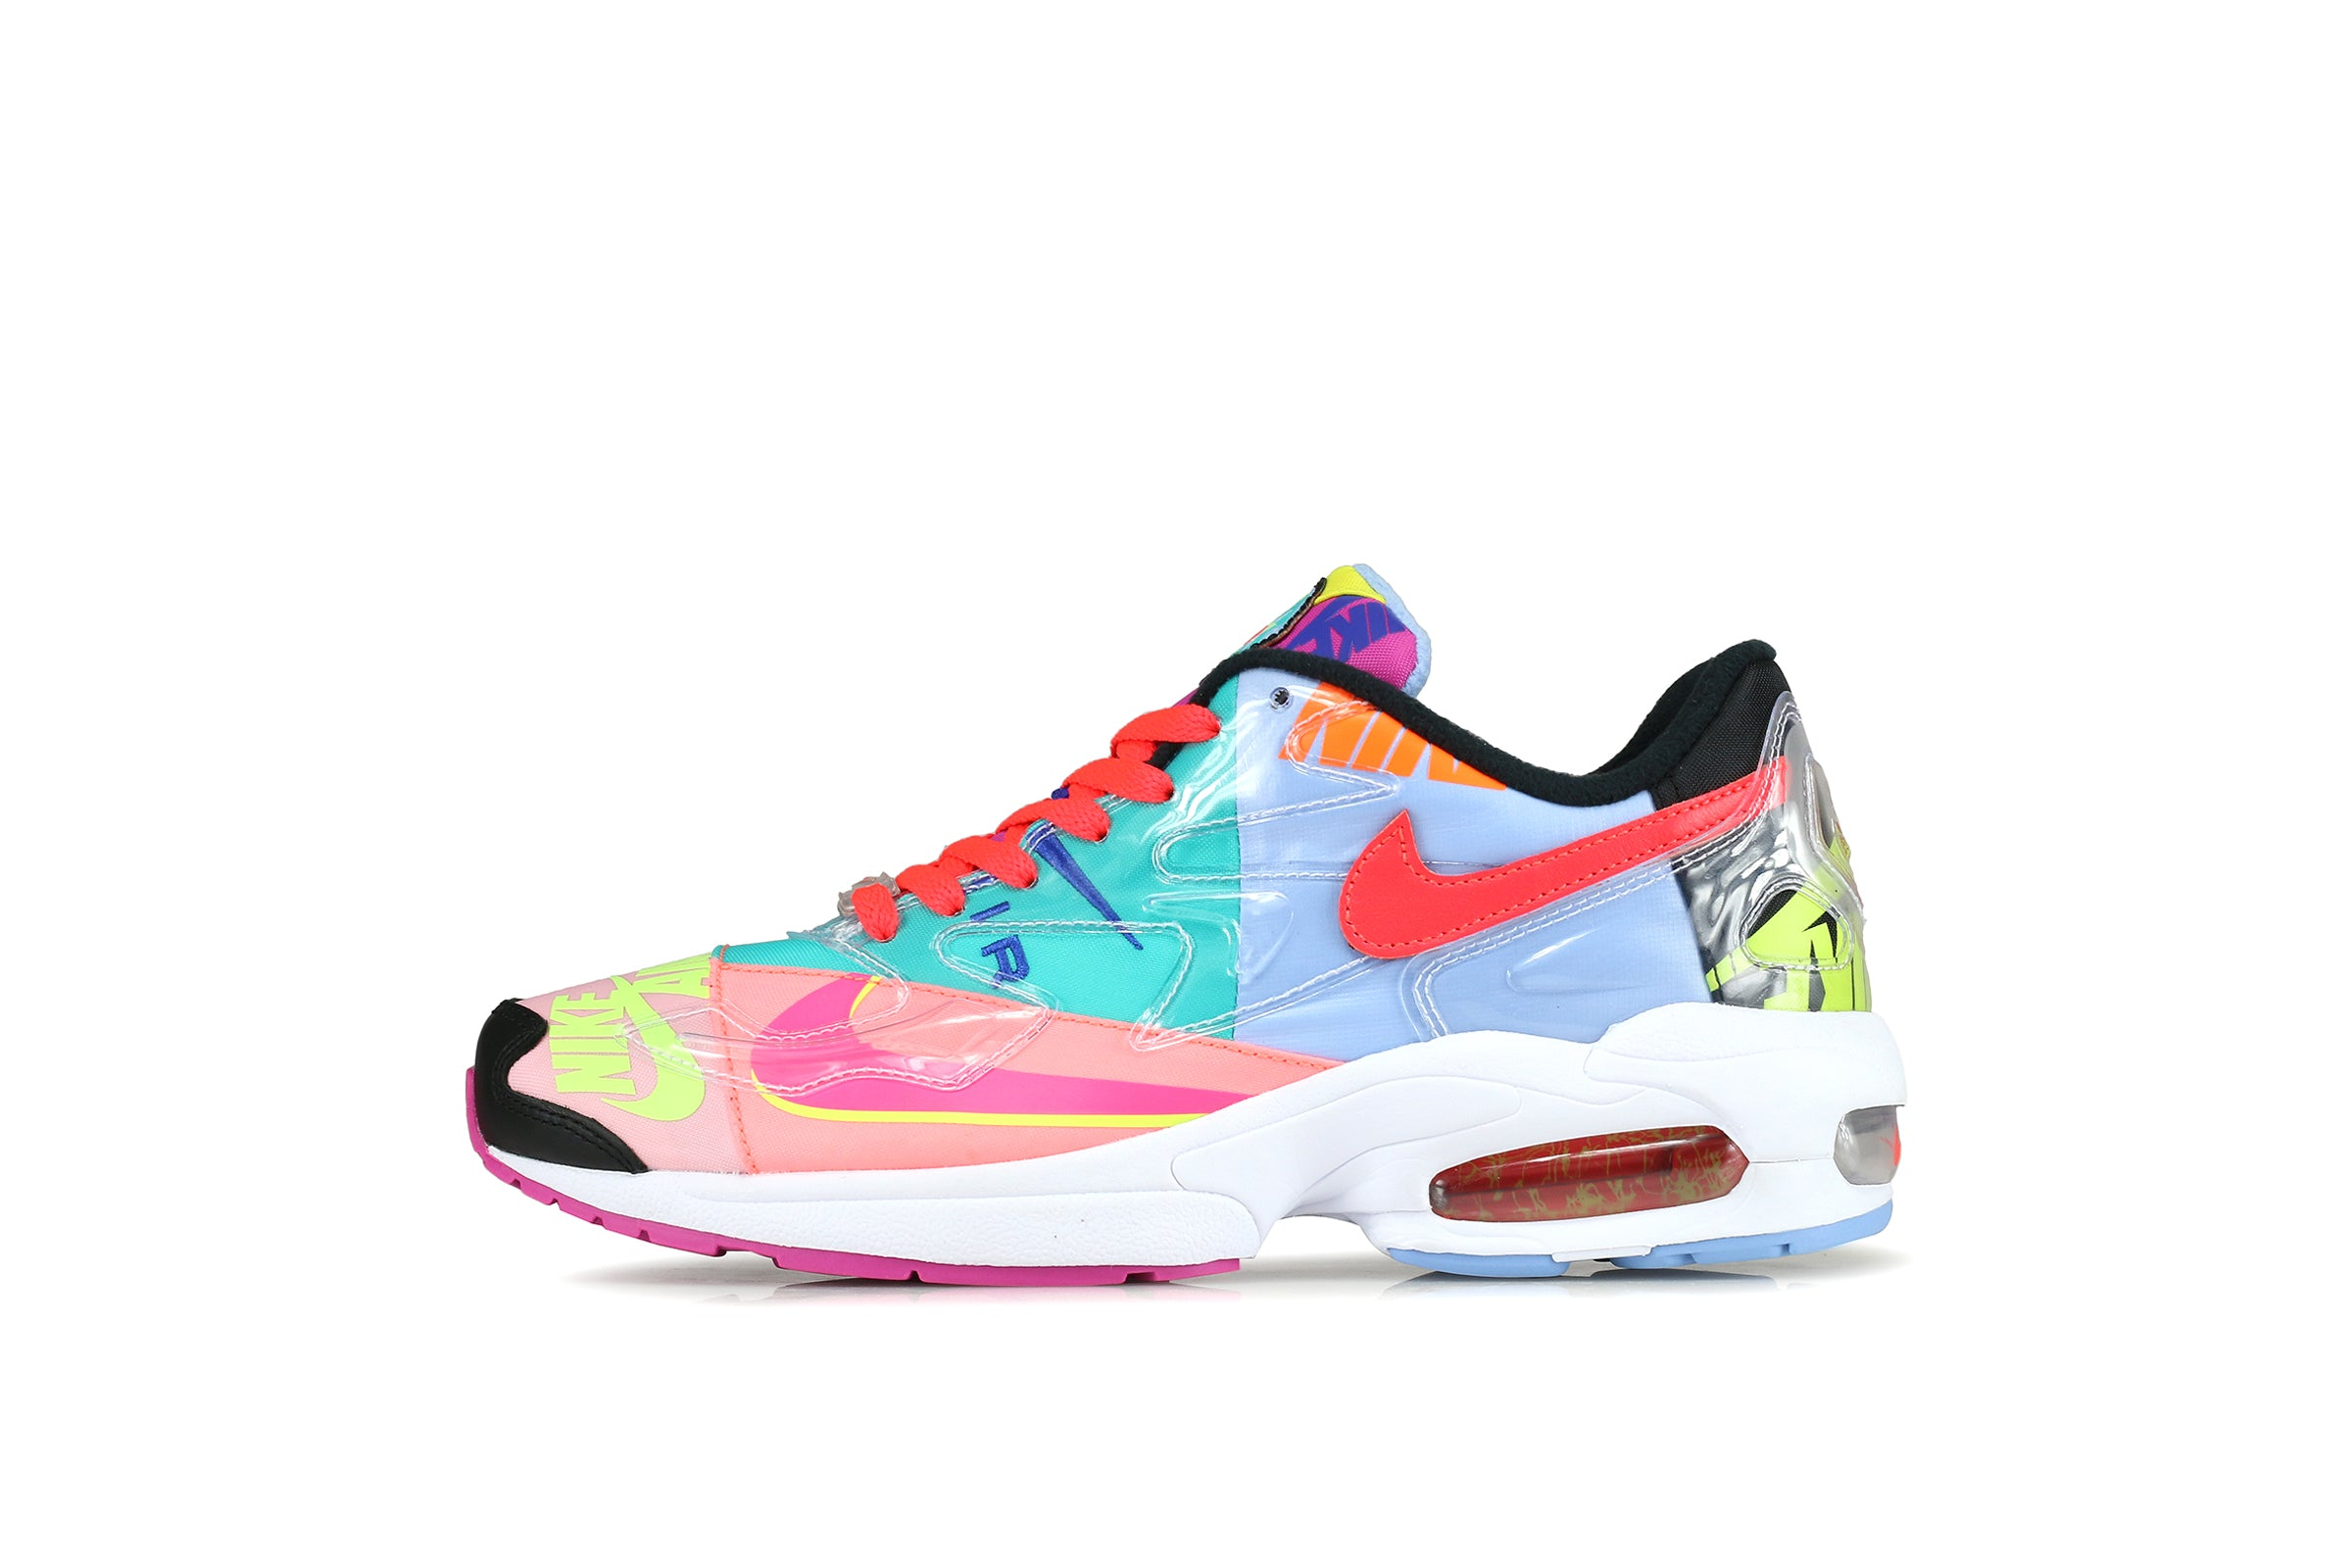 9d7d61c8a410 Nike Air Max2 Light x Atmos